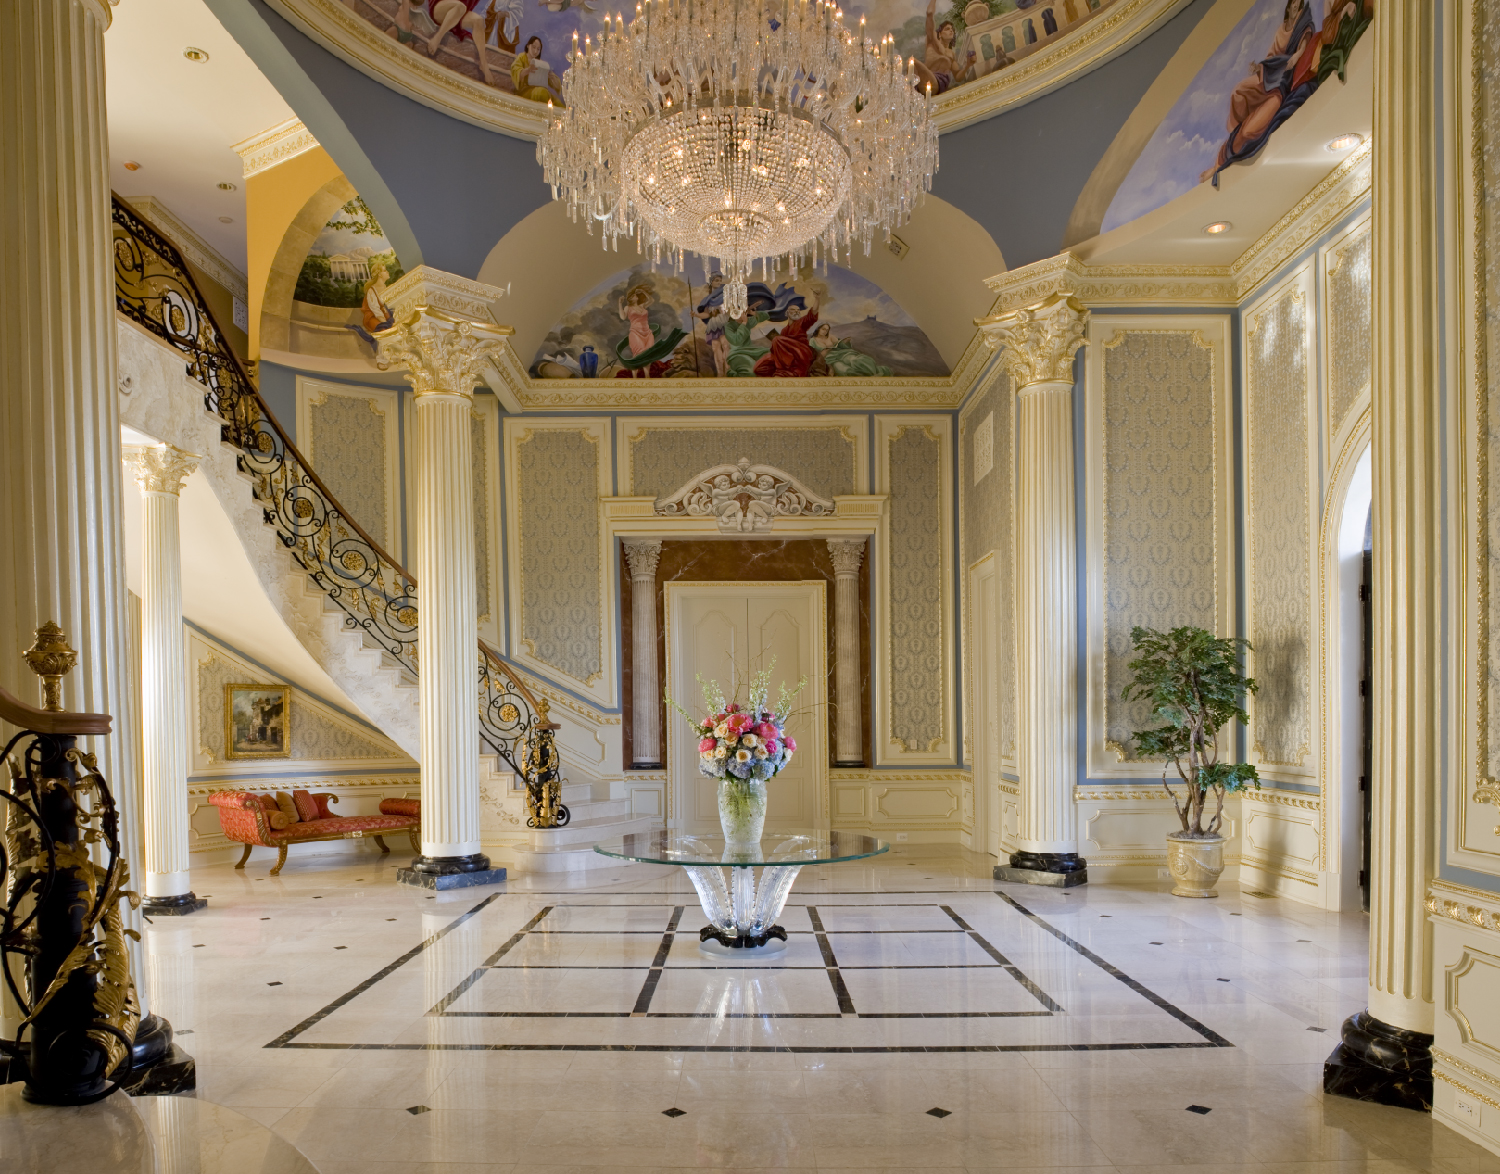 Luxurious Foyer with Lalique table and flowers